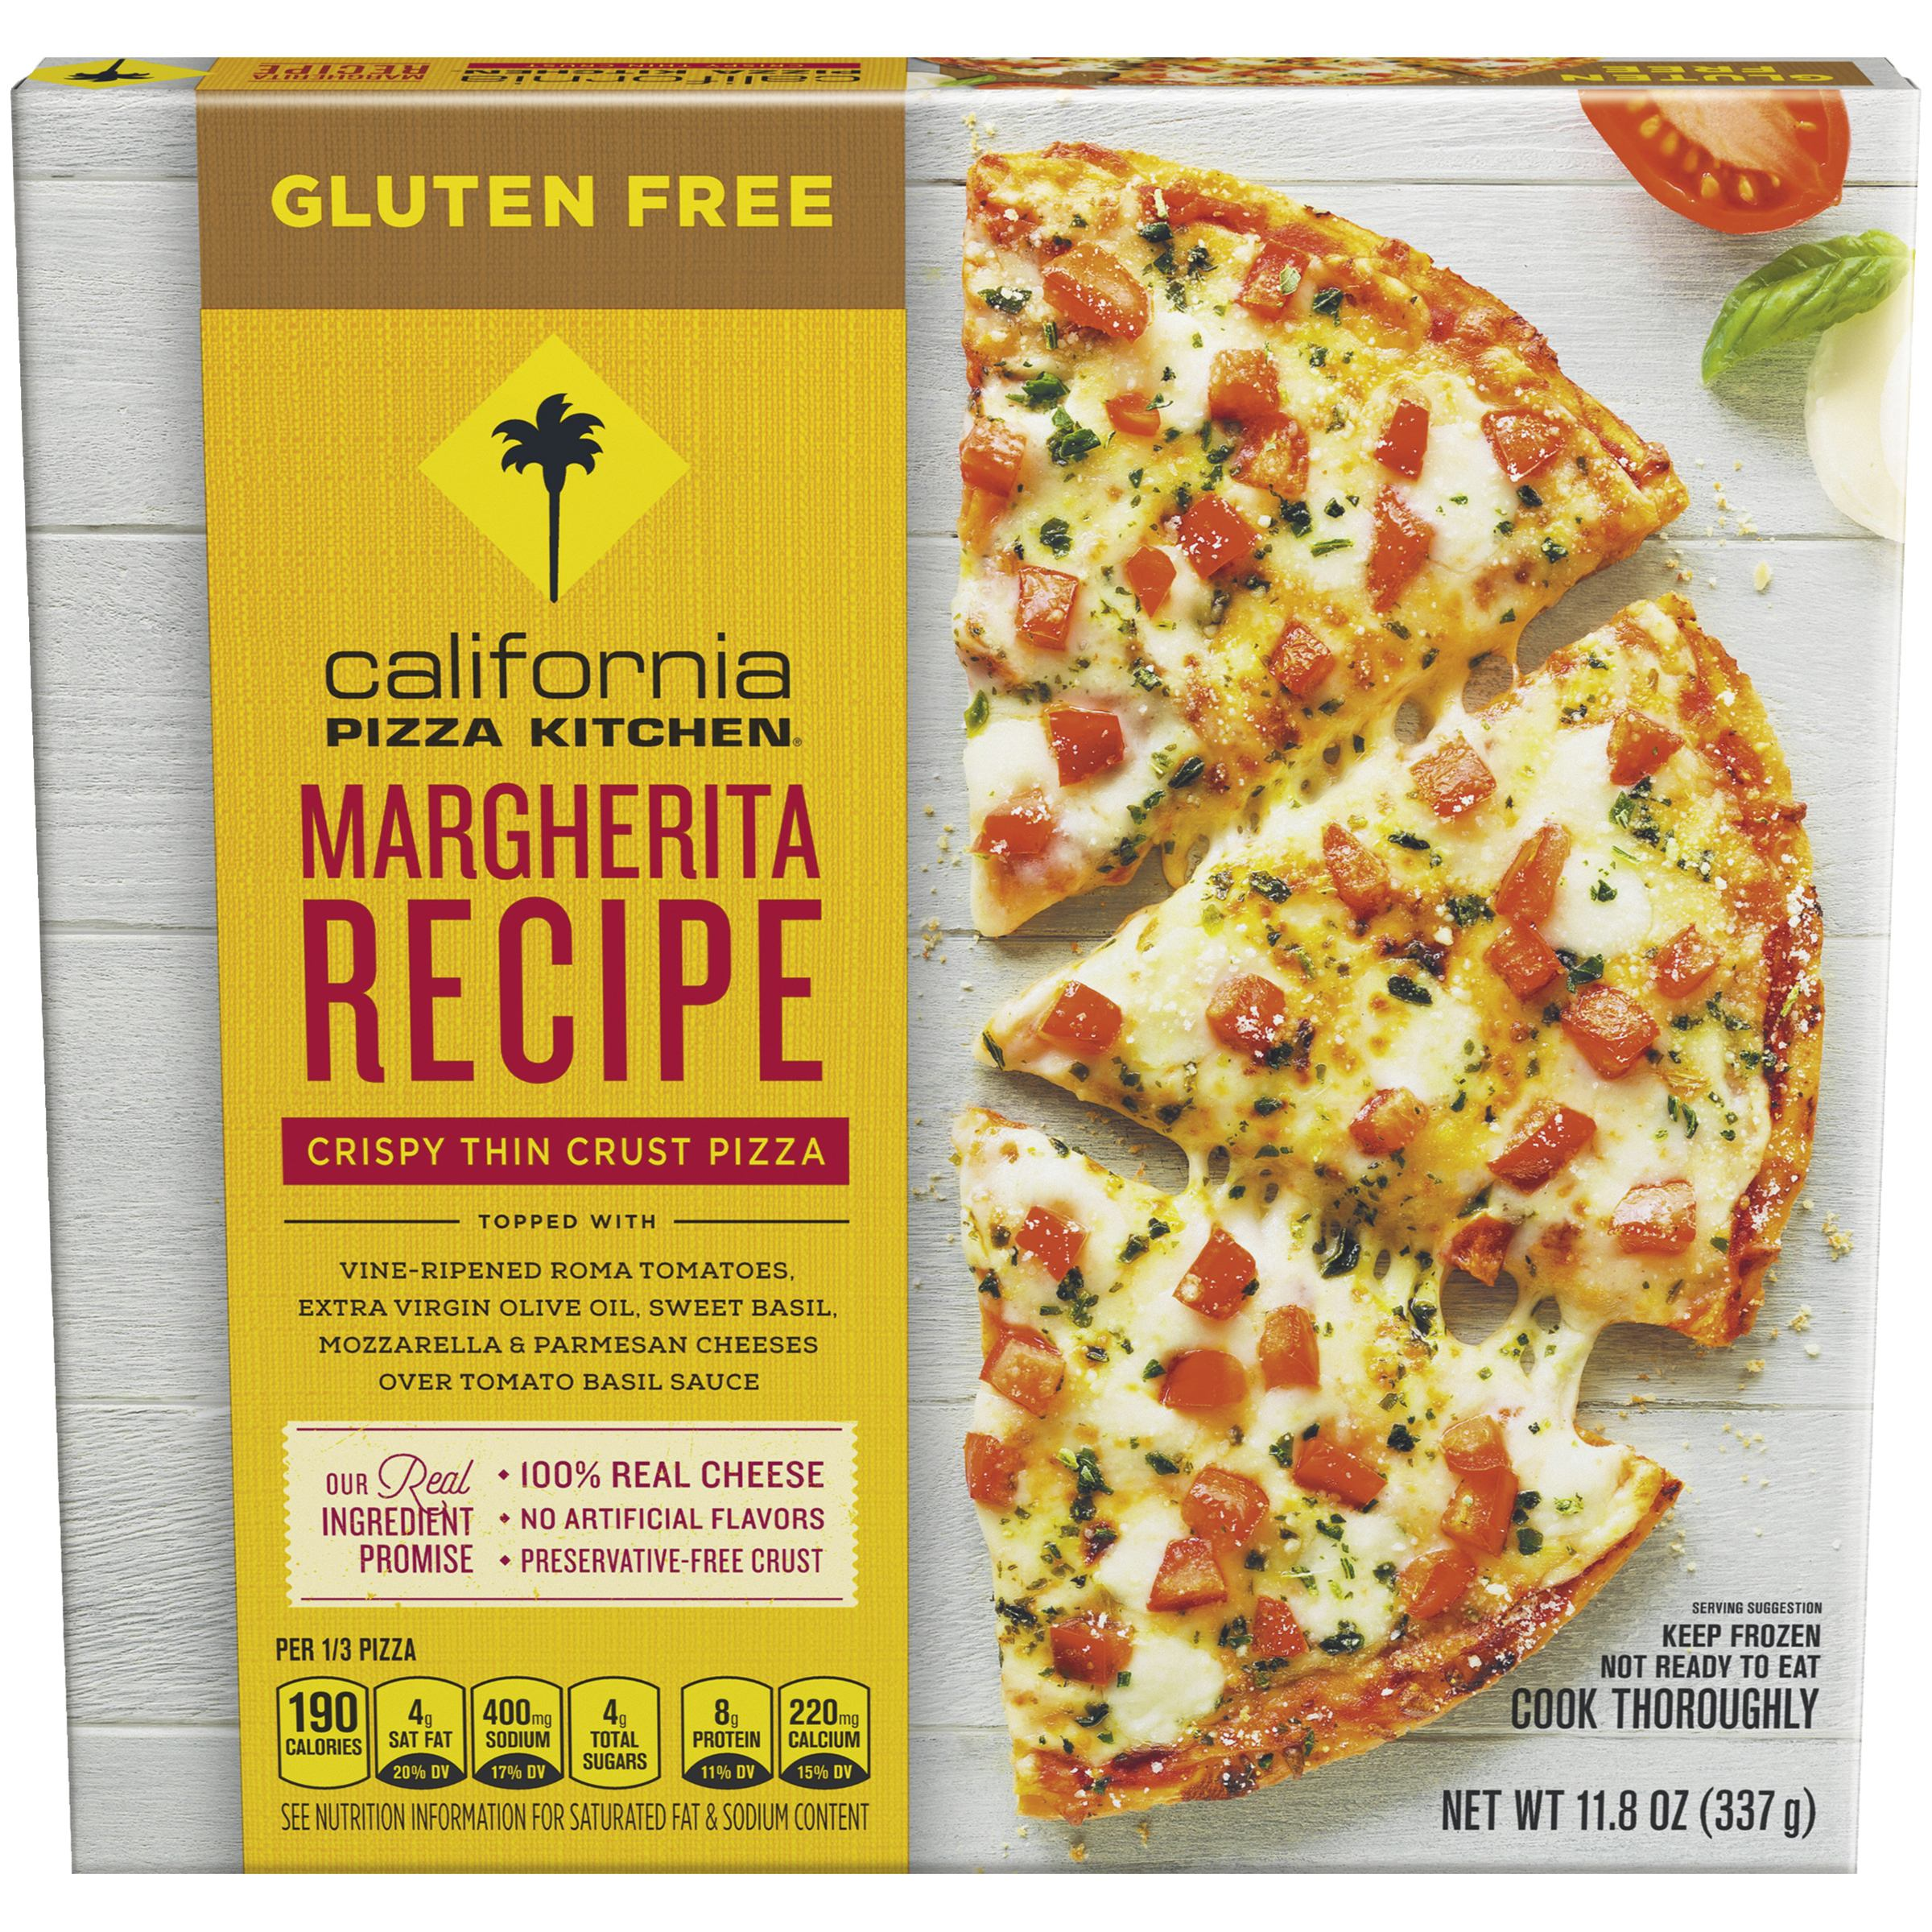 CALIFORNIA PIZZA KITCHEN Gluten Free Margherita Recipe Crispy Thin Frozen  Pizza 11.8 Oz. Box Pictures Gallery